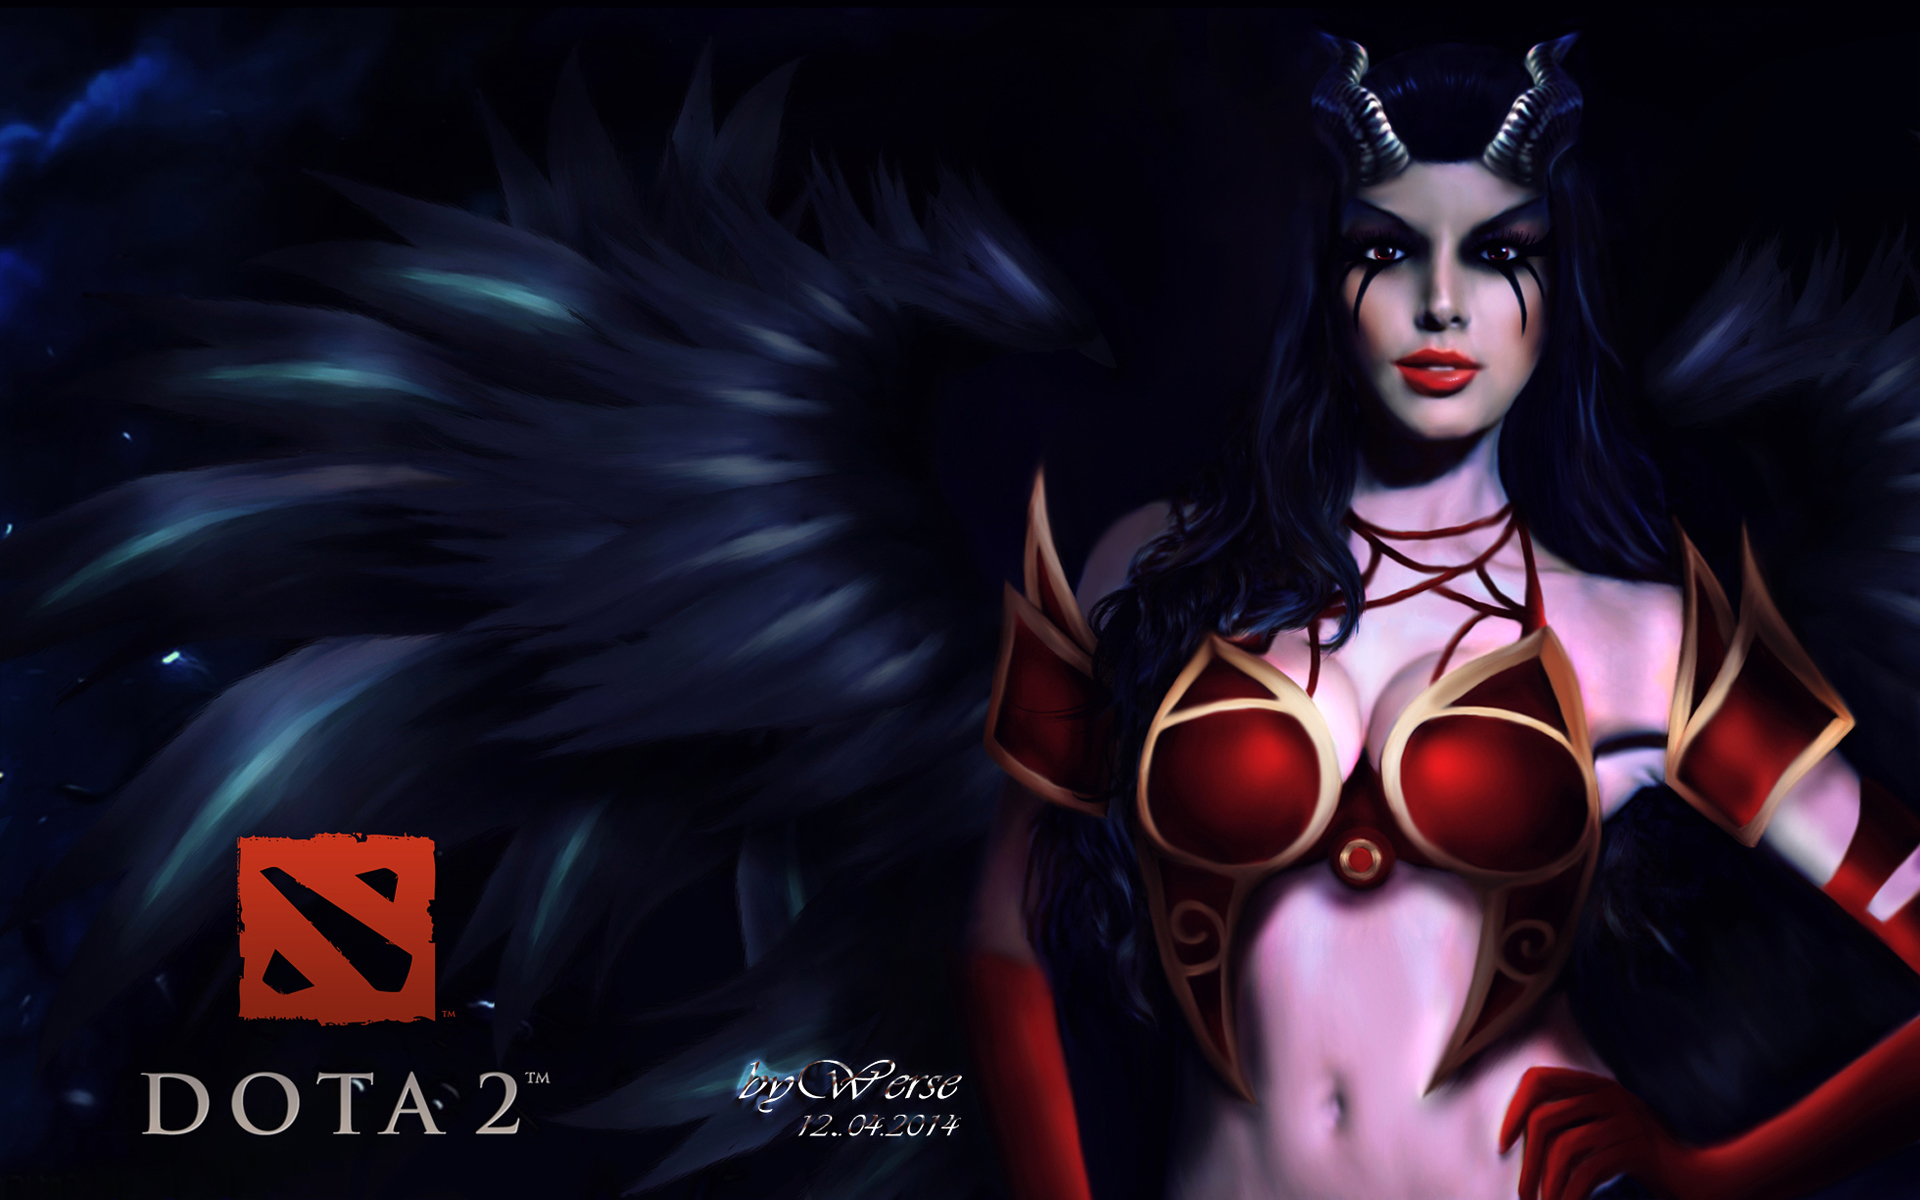 Queen Of Pain 2 Wallpapers Dota 2 Private Collection